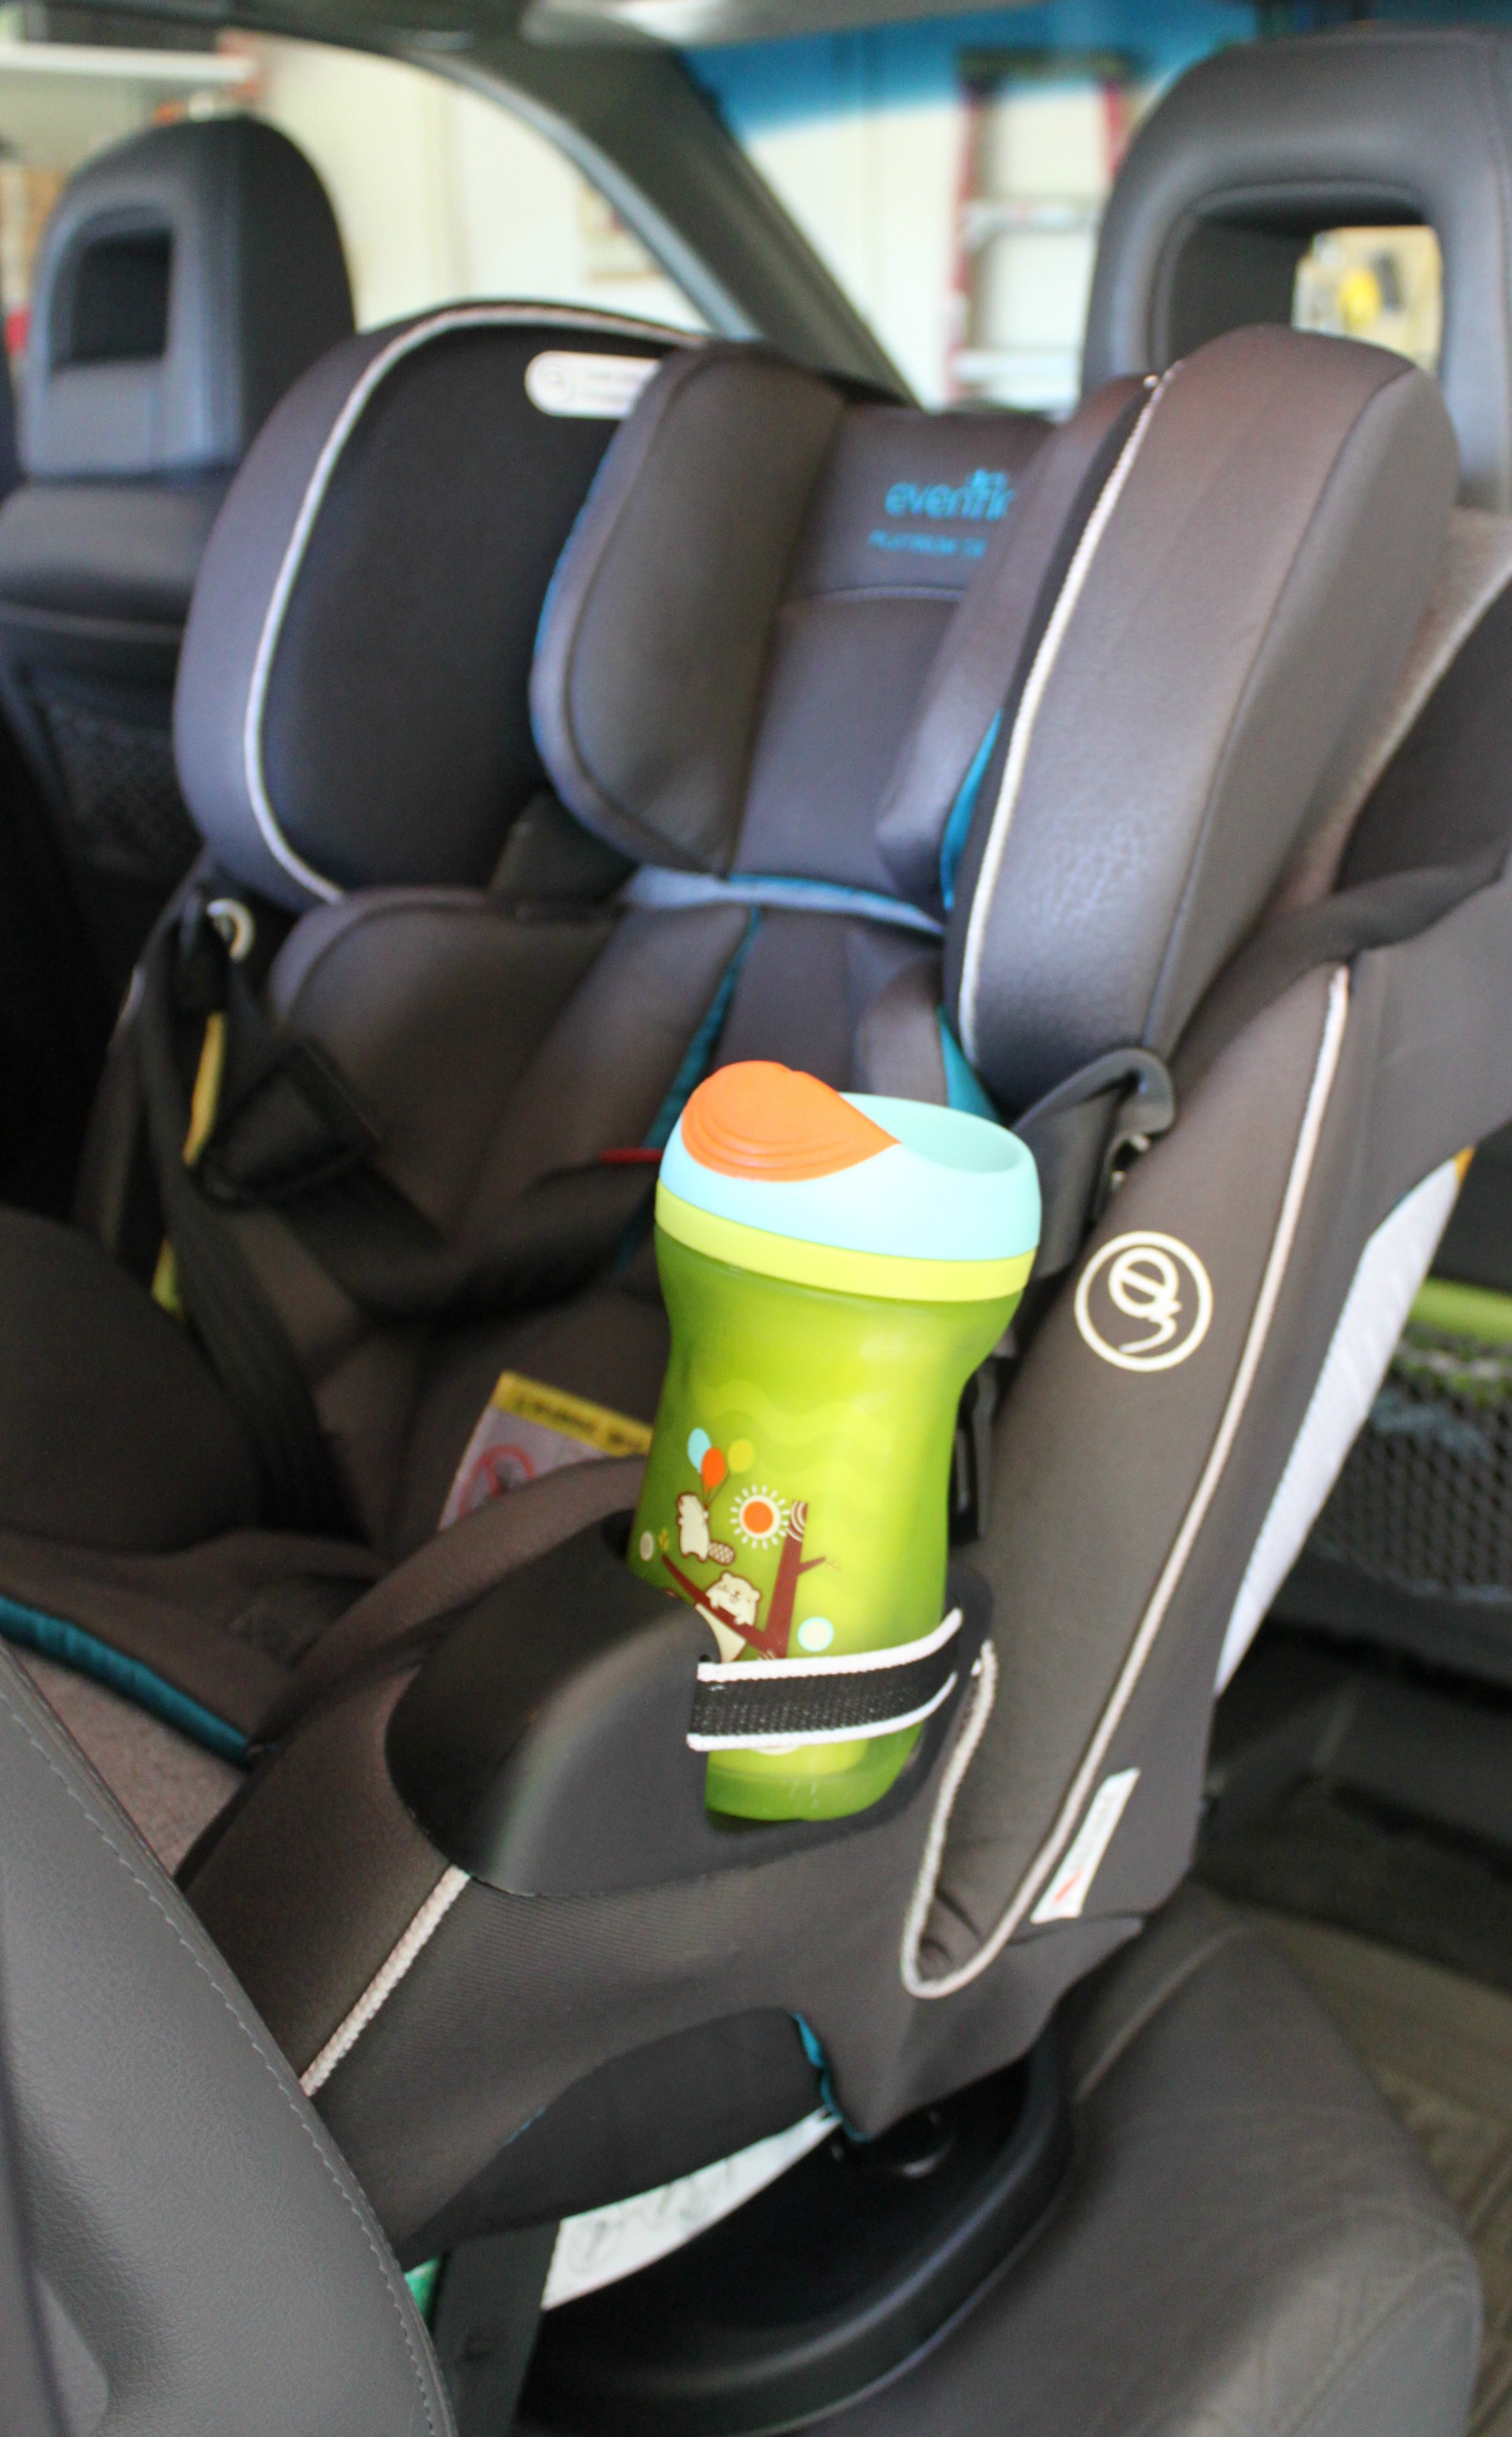 Check Out The Cupholder